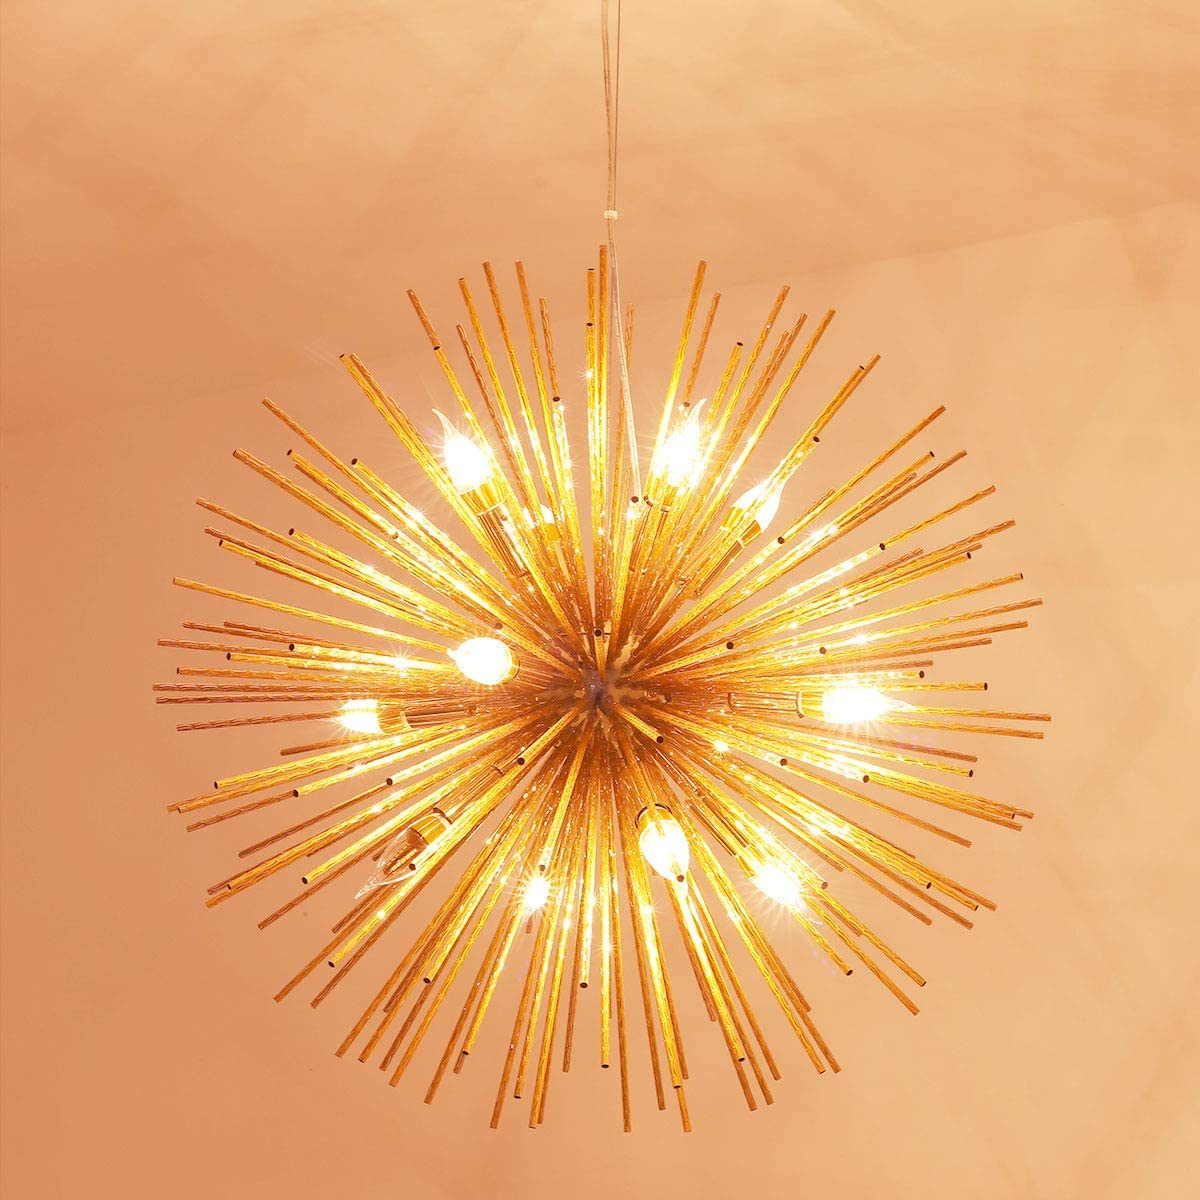 Jaycomey Firework Chandeliers,12-Light E12 Modern Rose Gold Pendant Lighting,Stanless Steel Ceiling Light Fixtures Wrought Aluminum Pendant Lamp